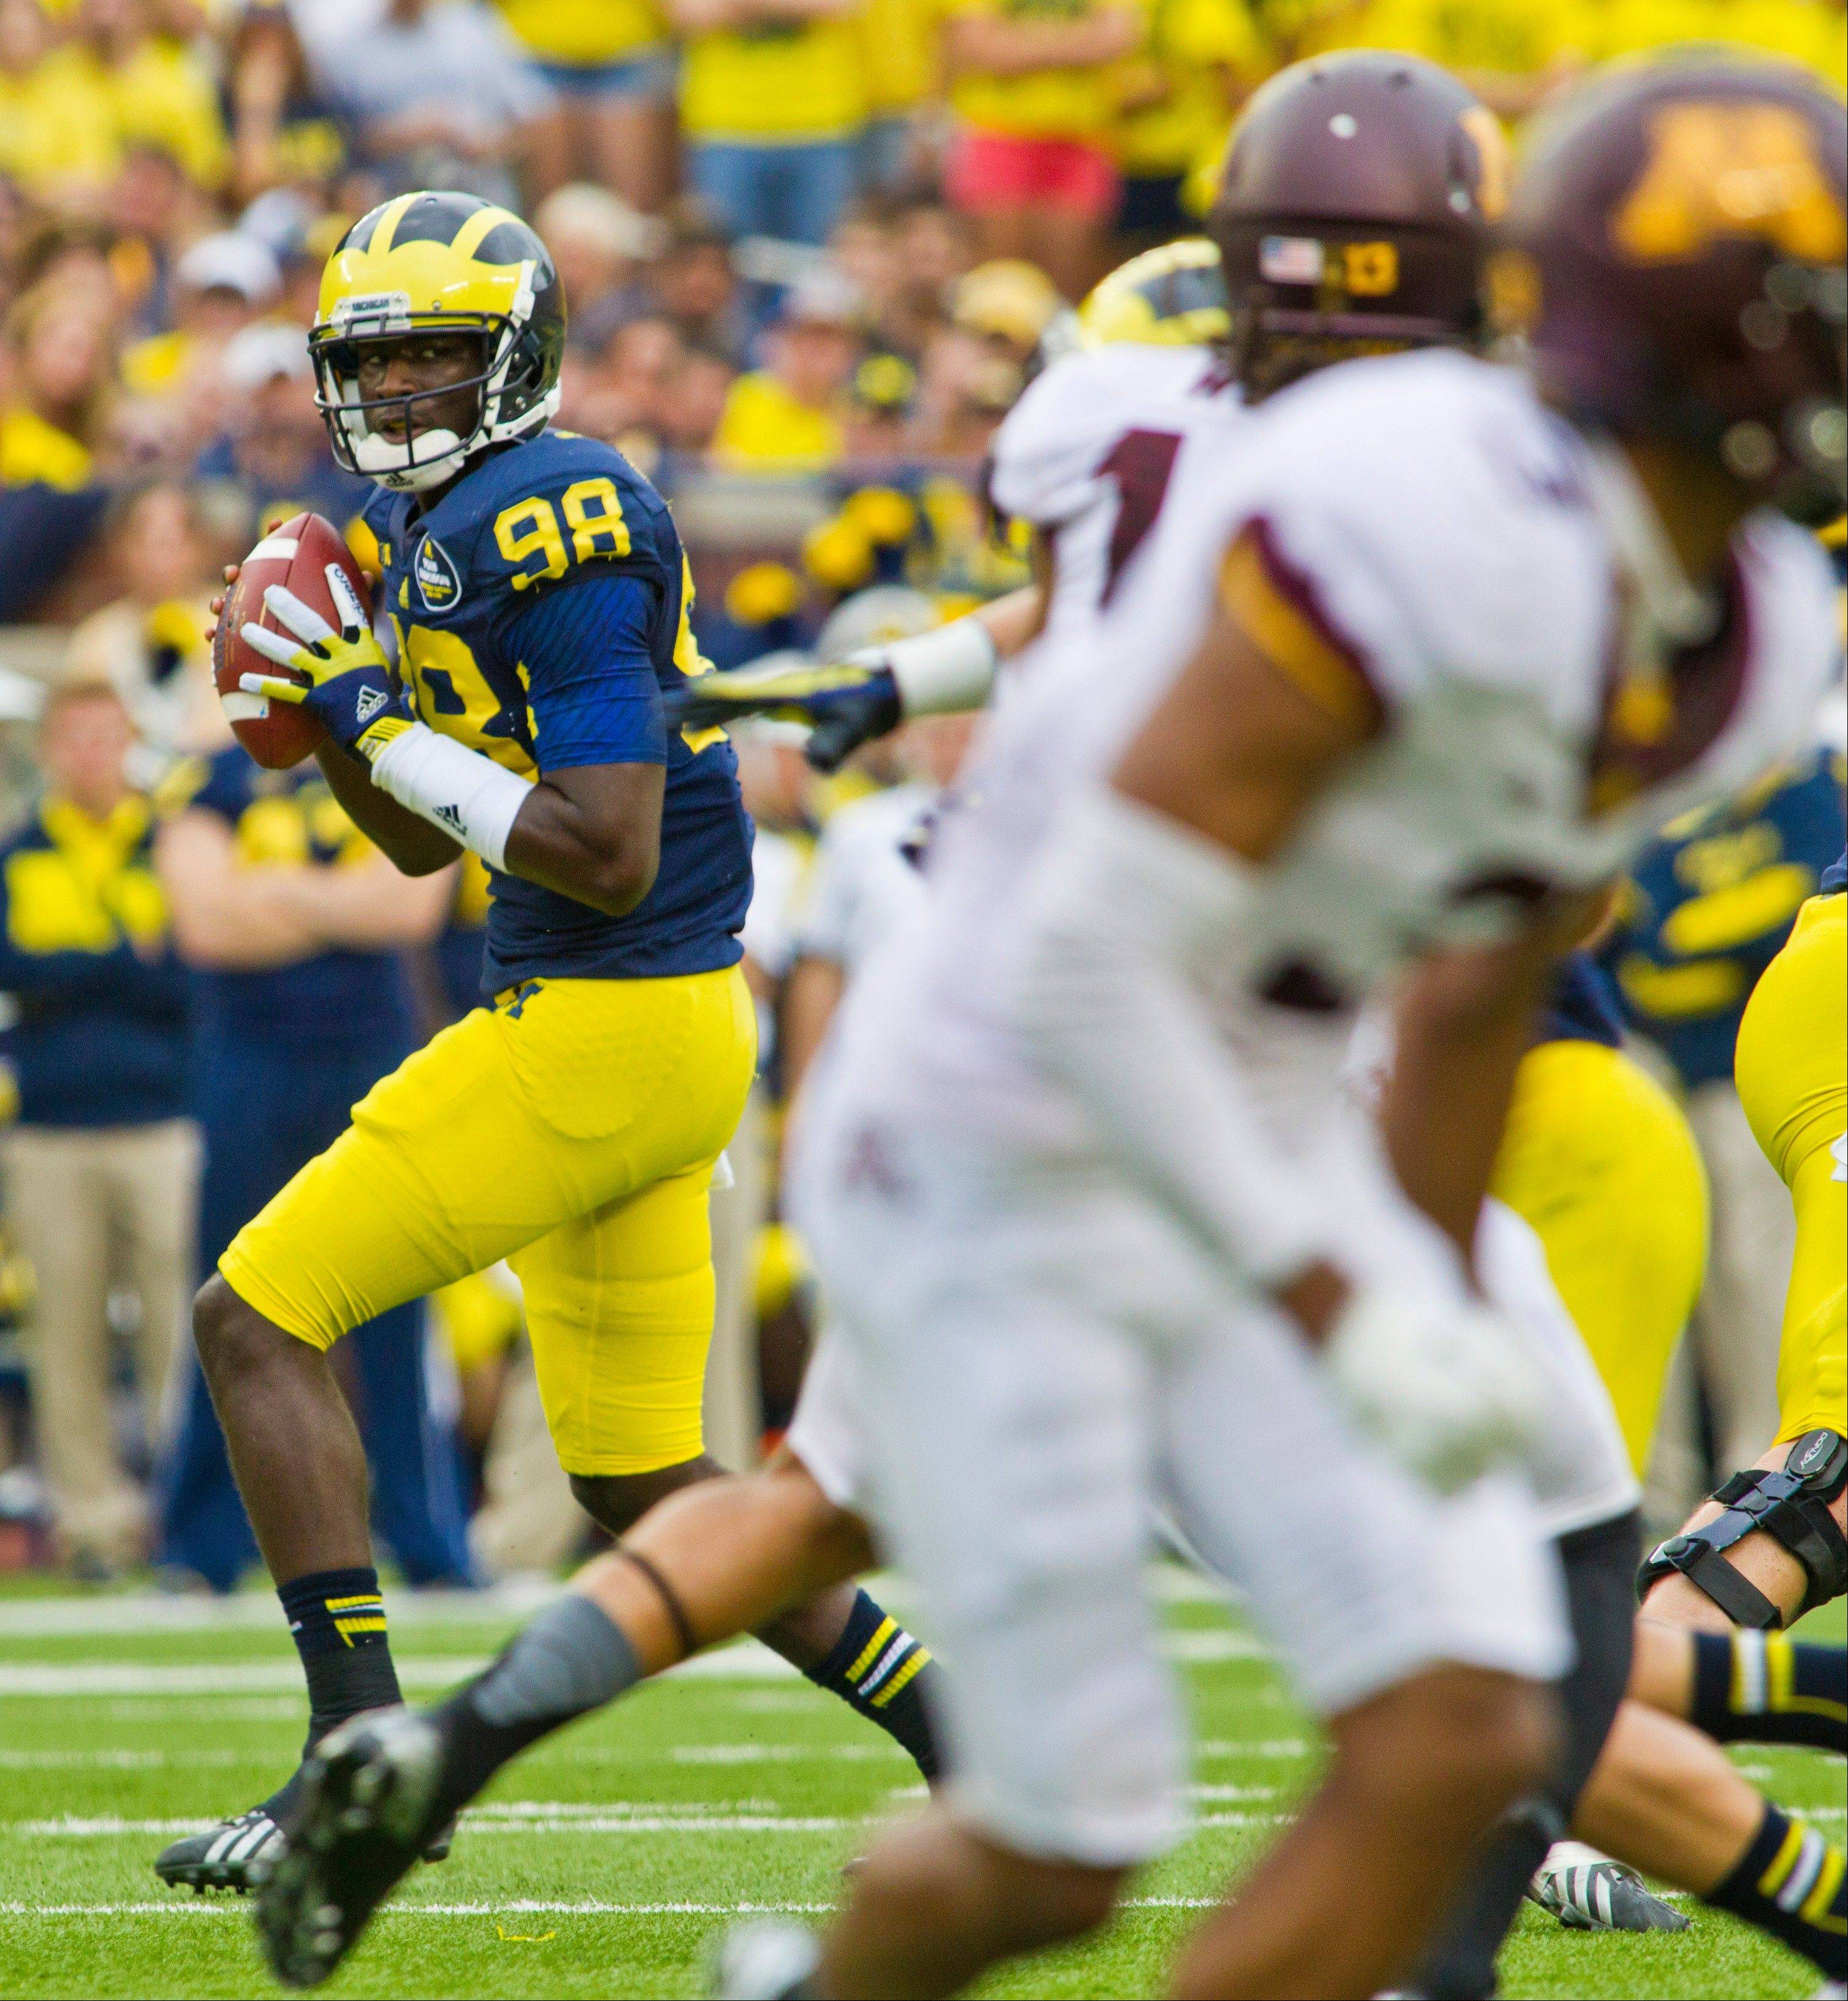 Michigan quarterback Devin Gardner (98) looks for an open receiver to throw a pass to during the second quarter of an NCAA college football game against Minnesota, Saturday, Oct. 5, 2013, in Ann Arbor, Mich. (AP Photo/Tony Ding)